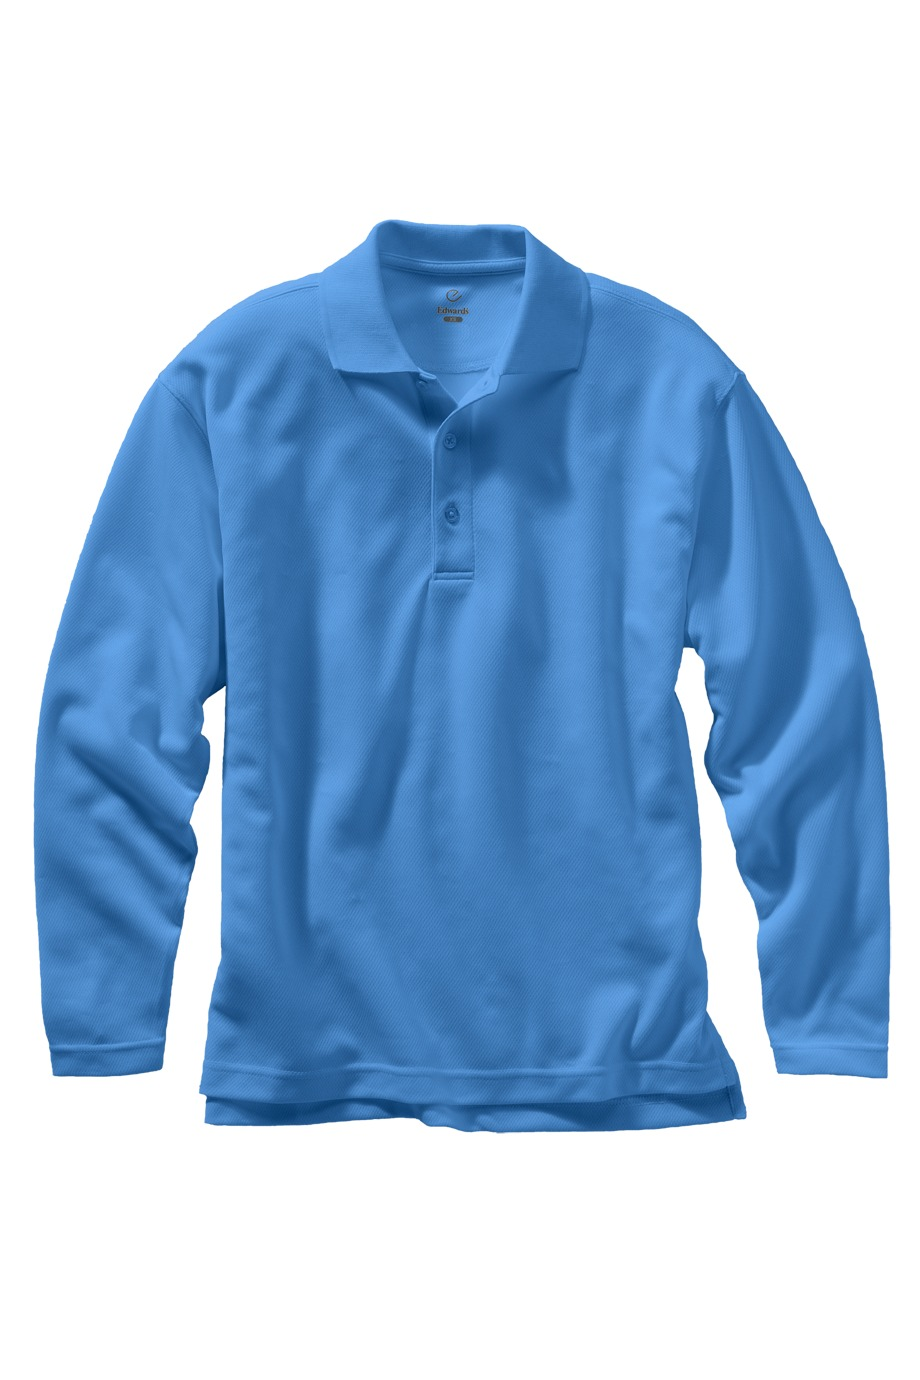 Edwards Garment 1578 - Dry-Mesh Long Sleeve Polo